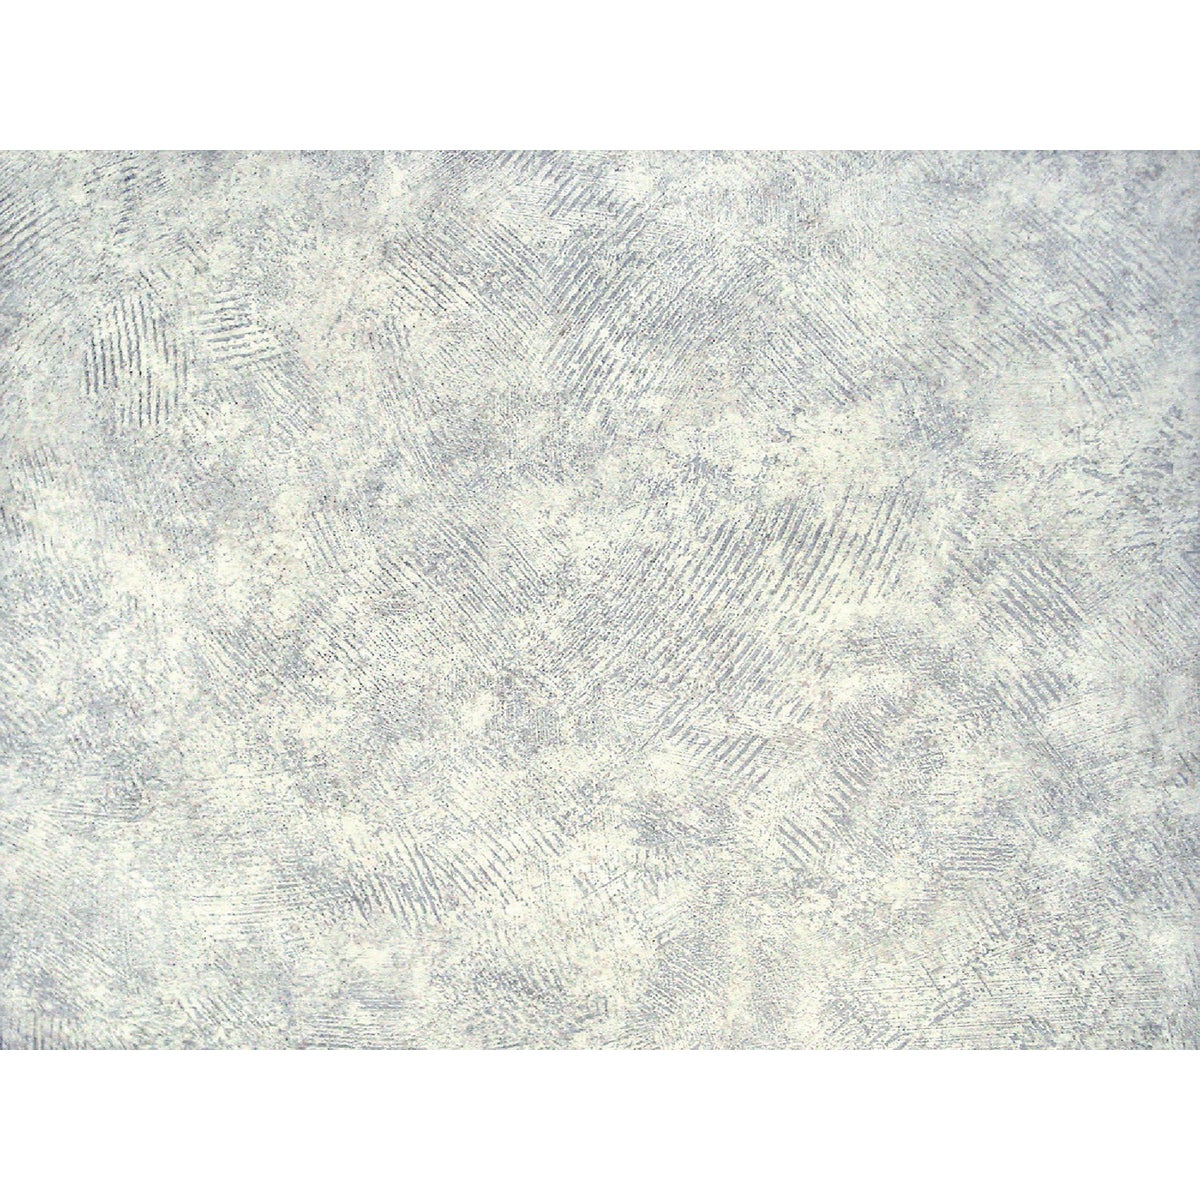 3.2MM WINTERSET PANELING - 425 by Dpi Decorative Panel